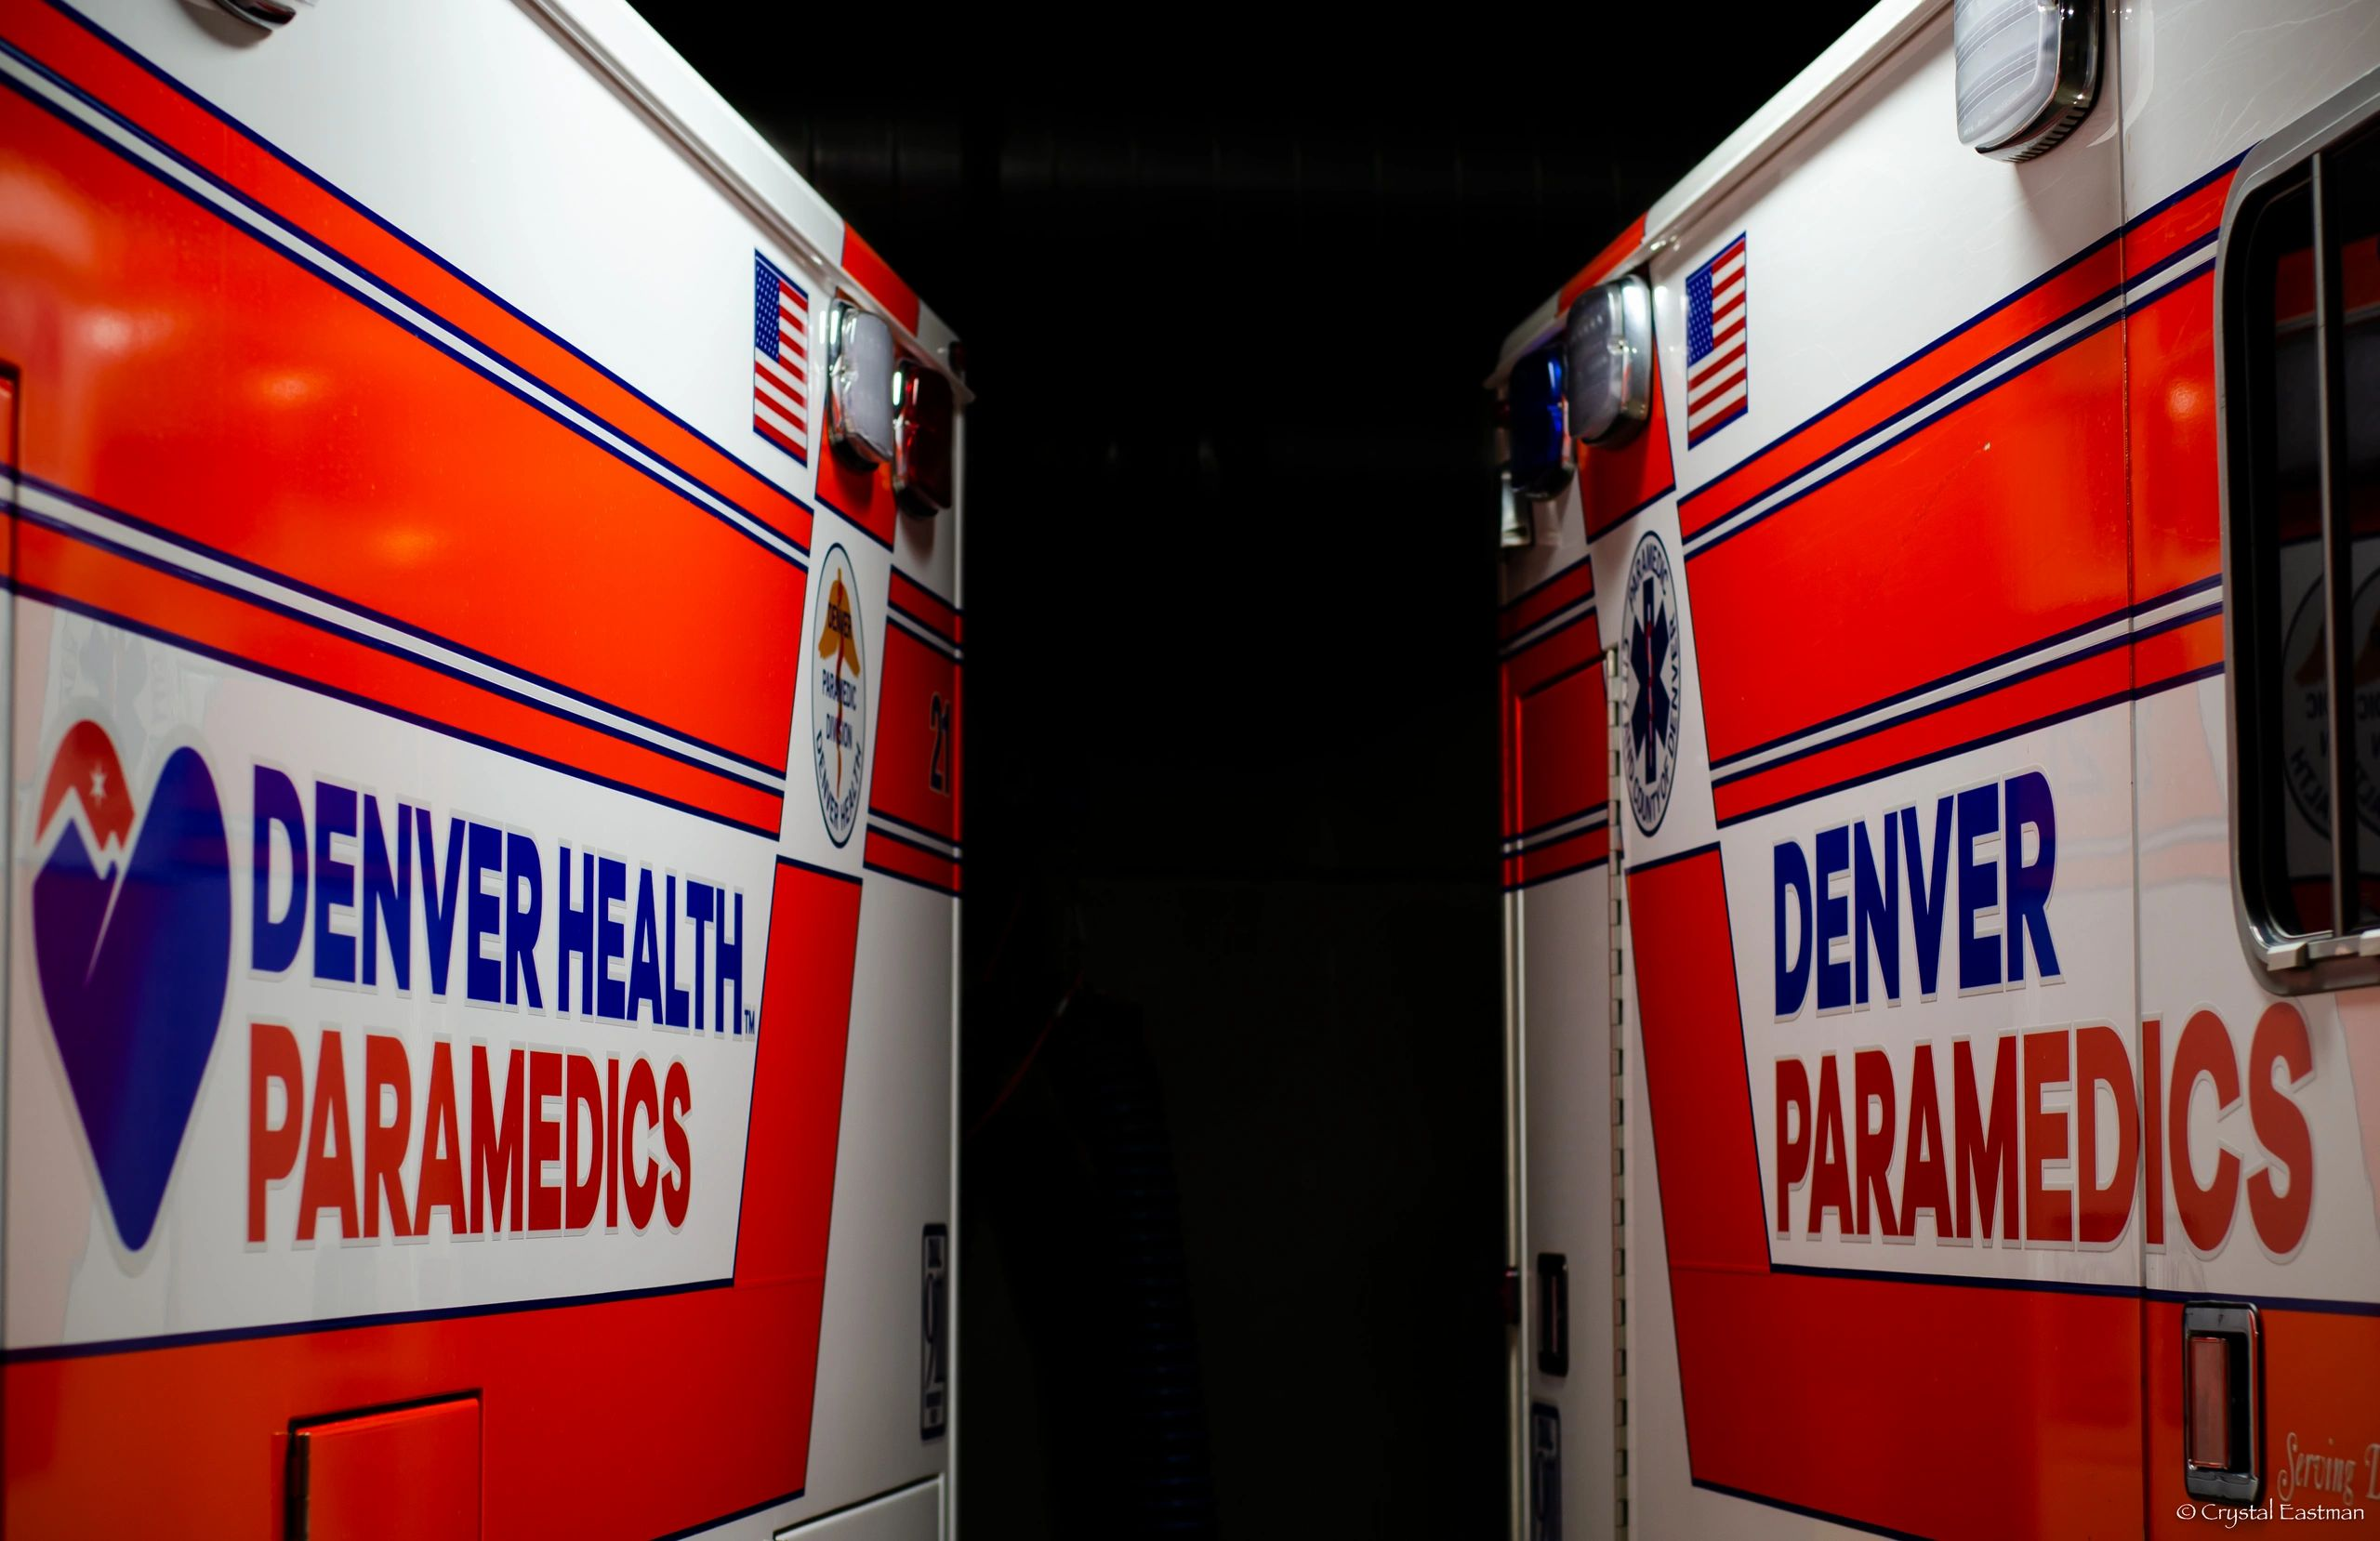 Denver Health Paramedics - Home